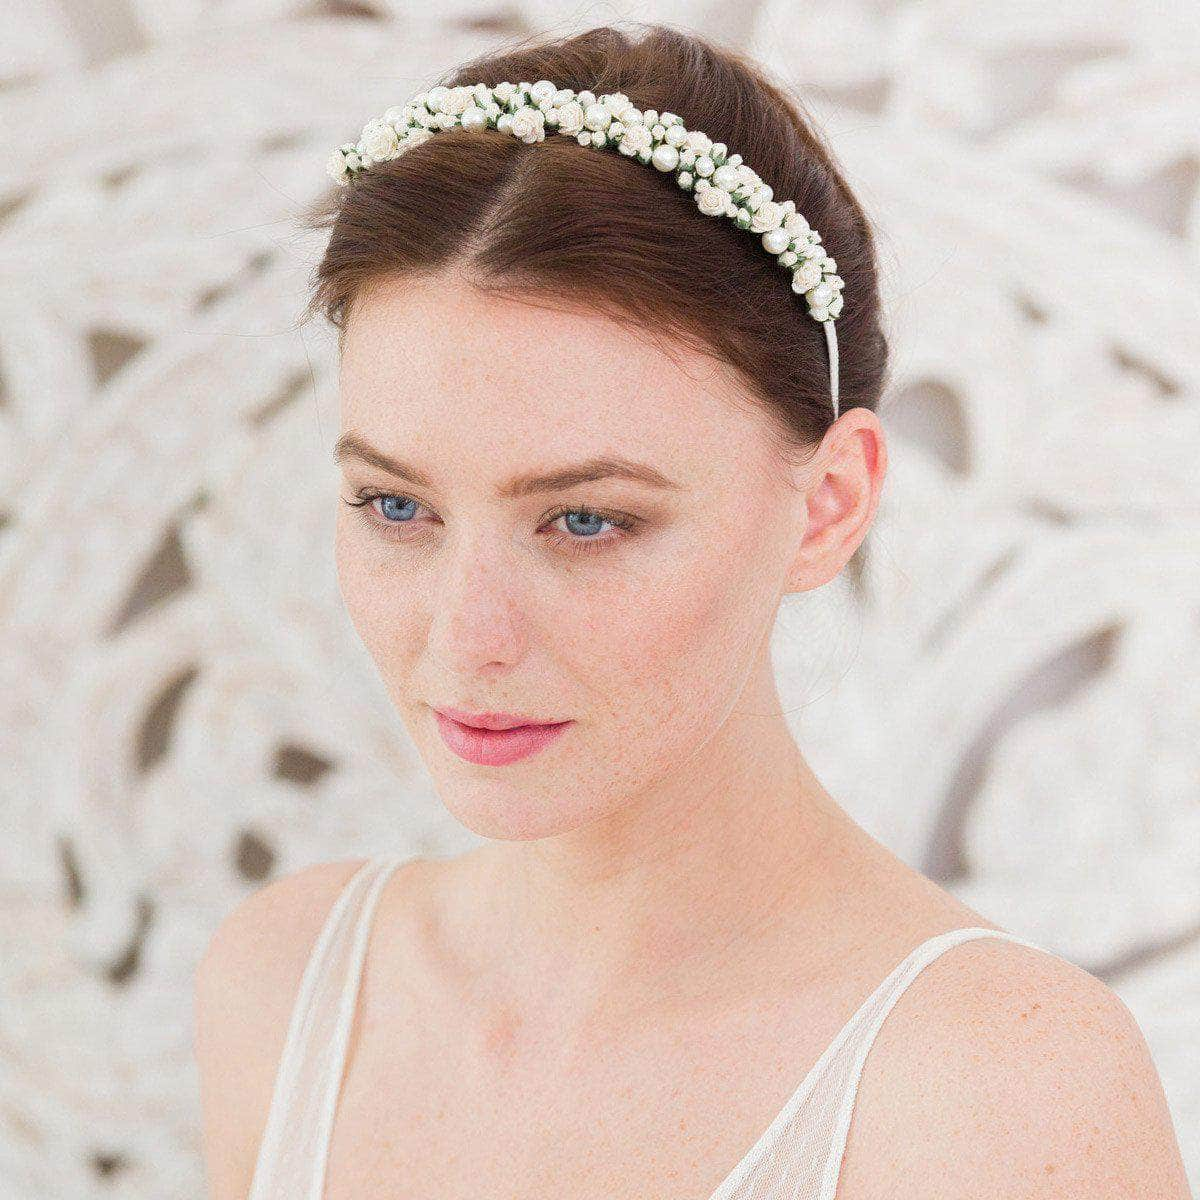 Rose wedding headband with pearls - 'Rosie' | Britten Weddings